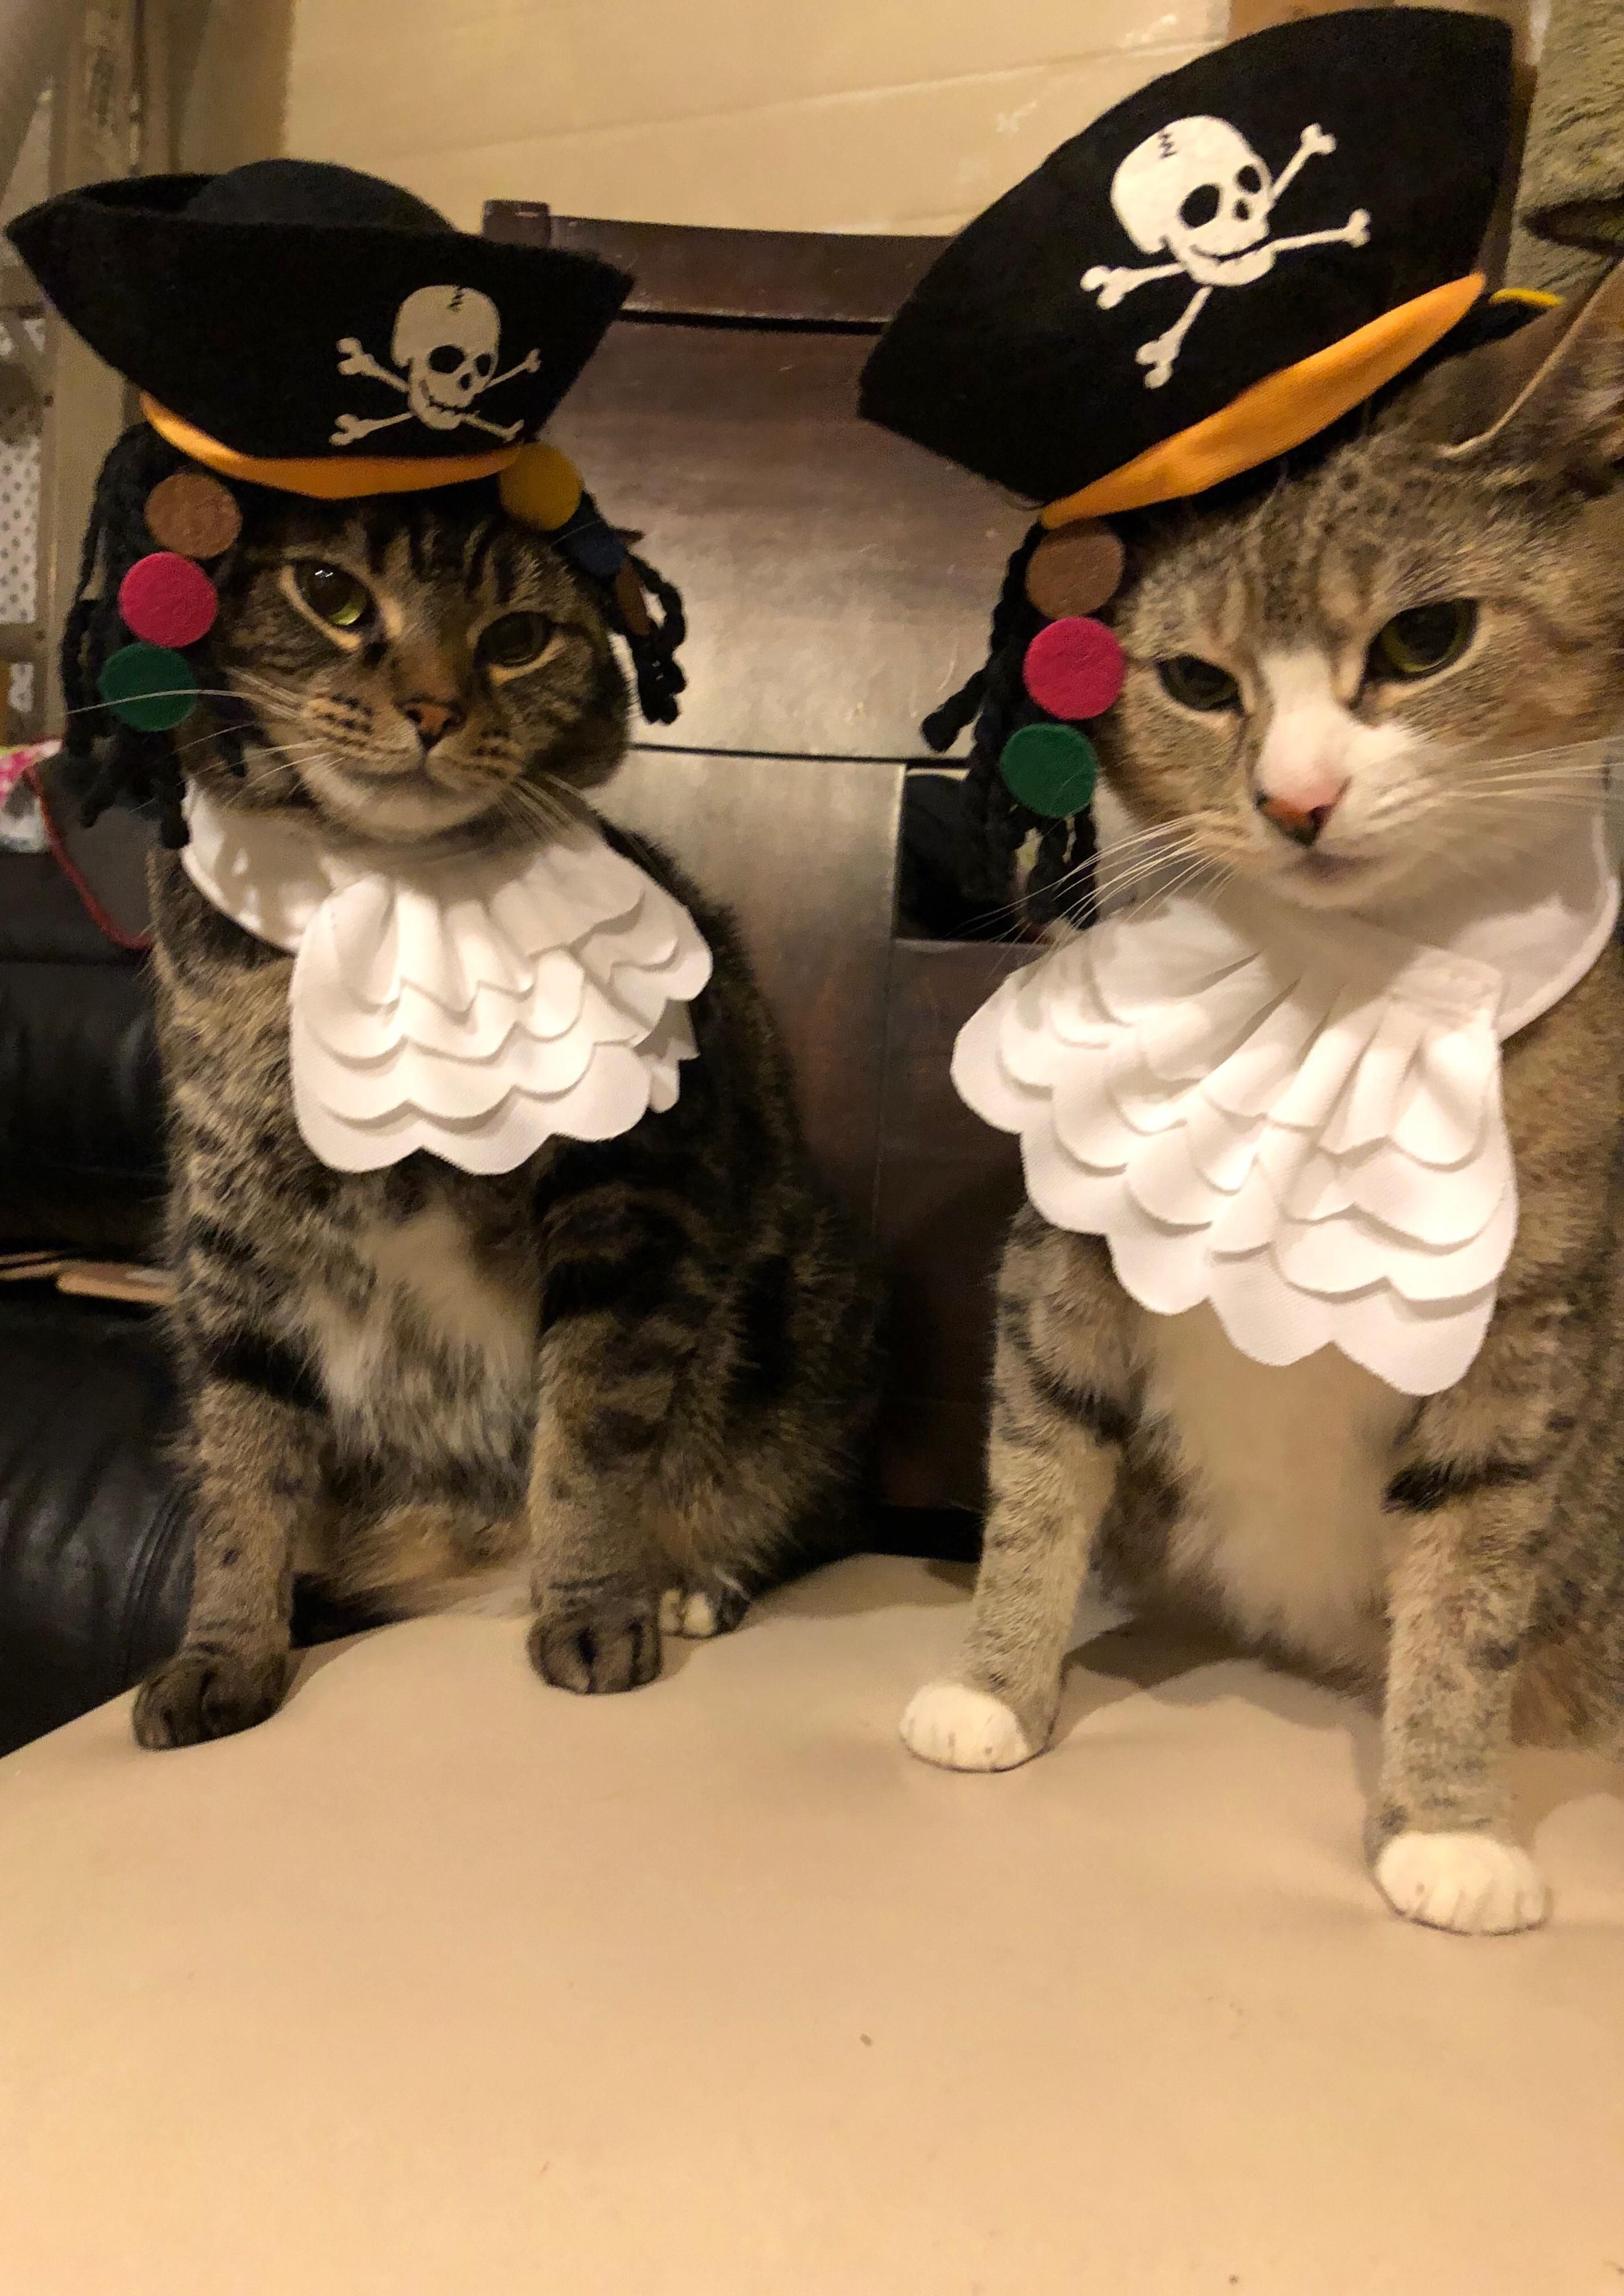 My Gf Did The Impossible And Got These Two Nut Jobs To Put On Costumes And Pose Music Indieartist Chicago Cute Cats And Kittens Cute Animals Foster Cat